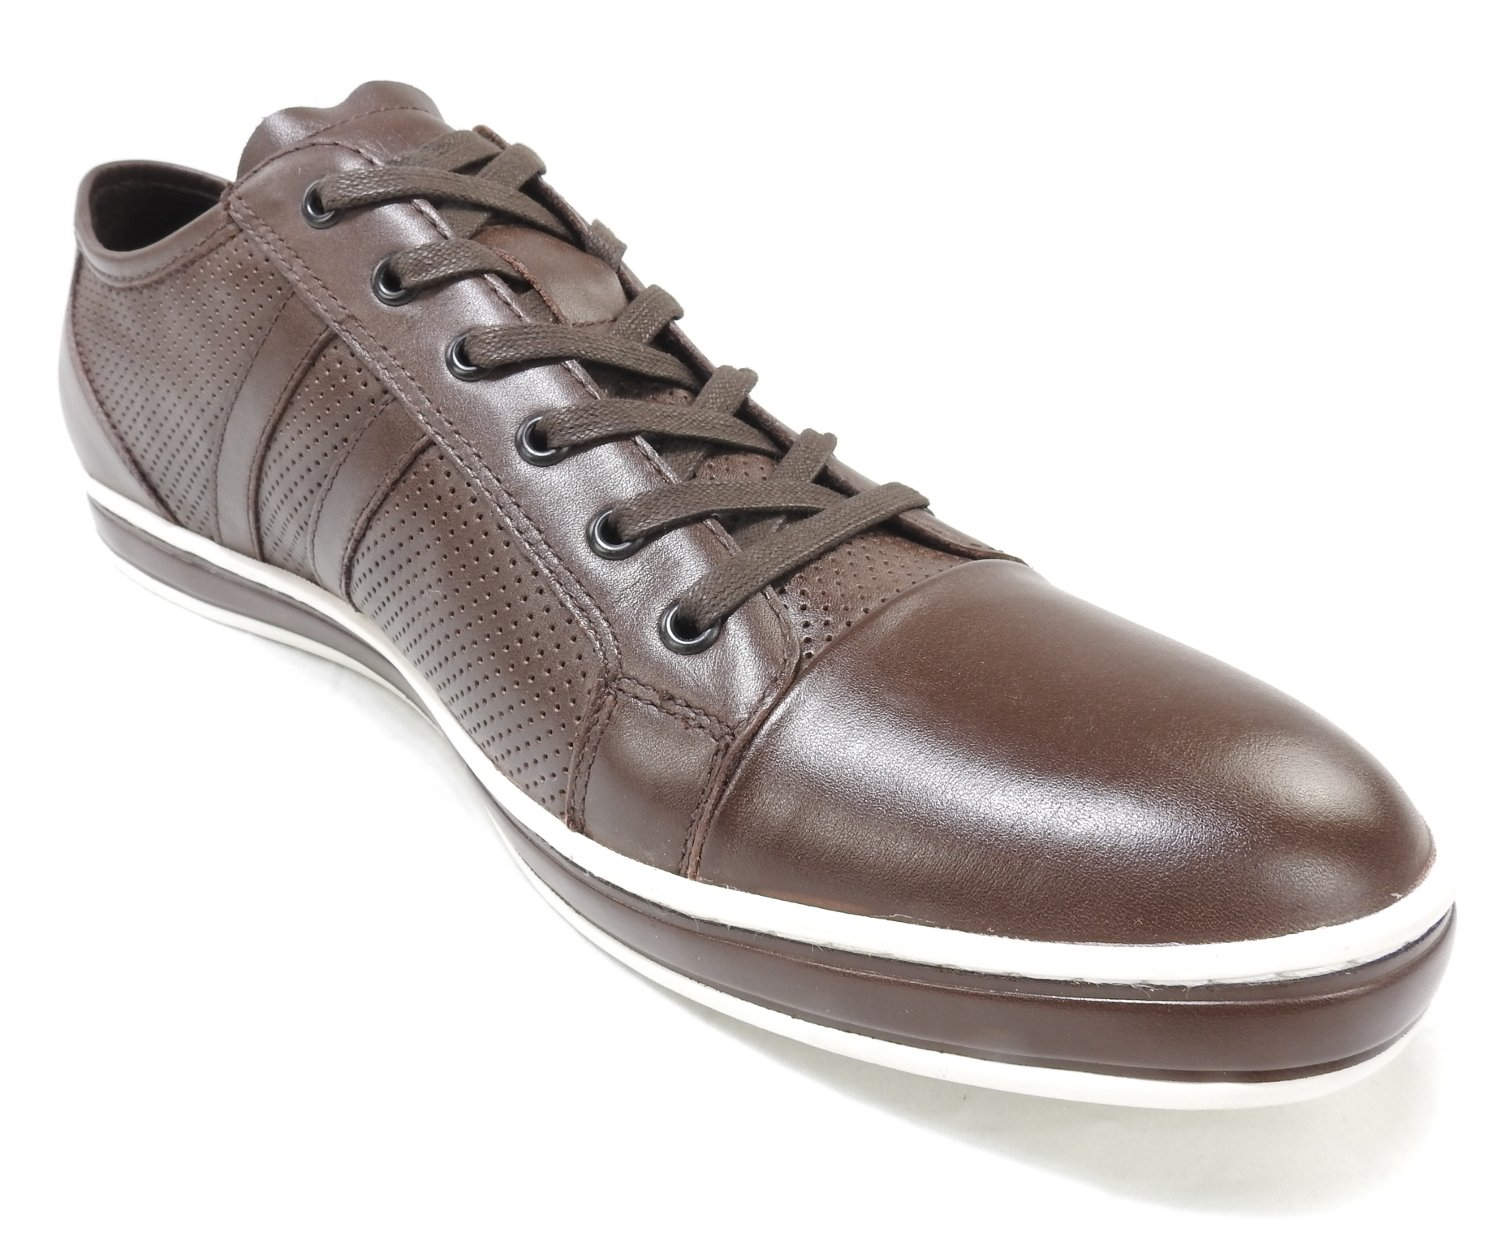 Kenneth Cole Mens Size 10 Sneakers, Brown